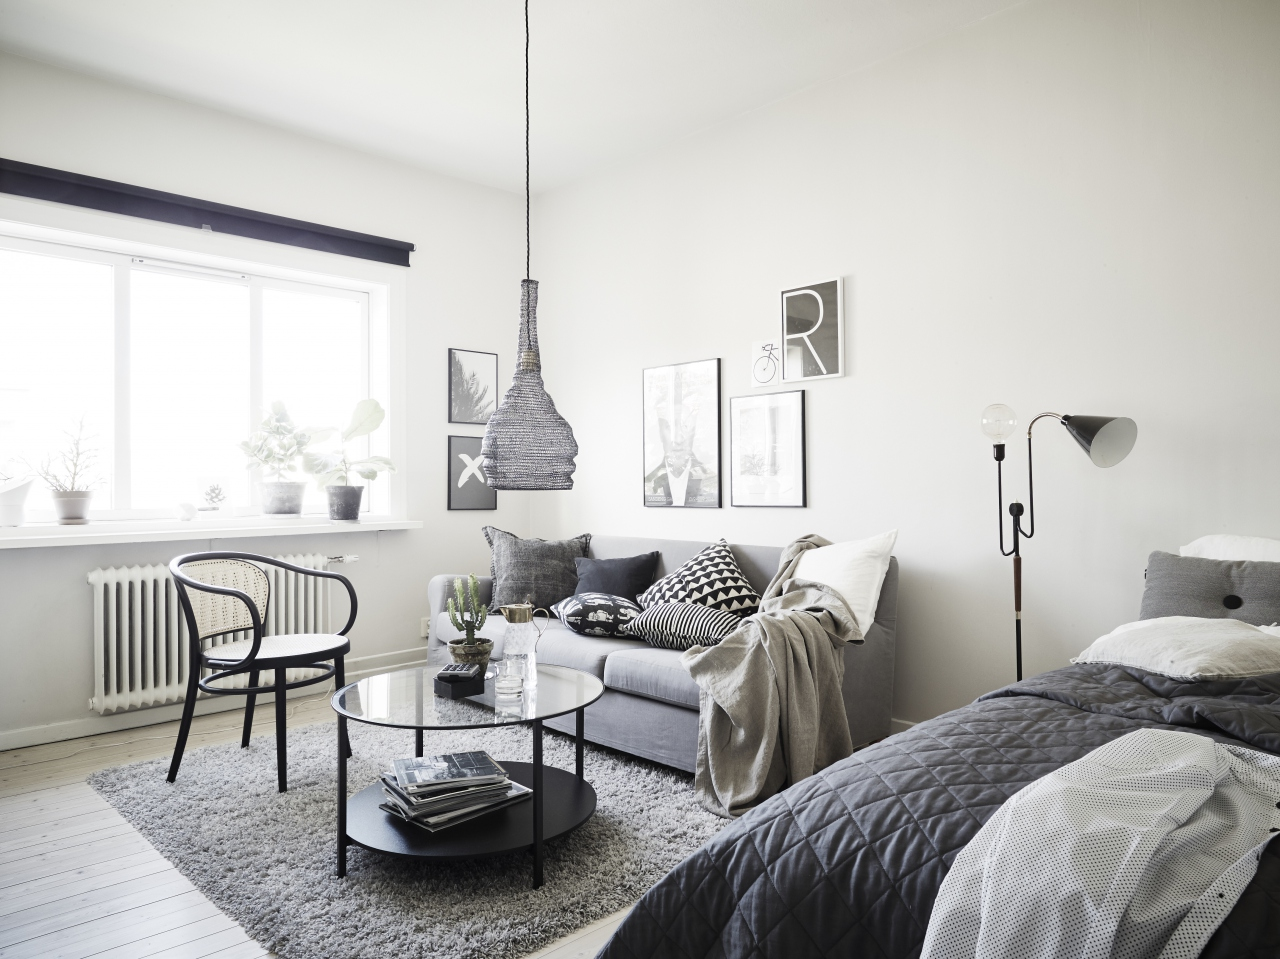 Beautiful home in grey coco lapine designcoco lapine design for One bedroom living room ideas